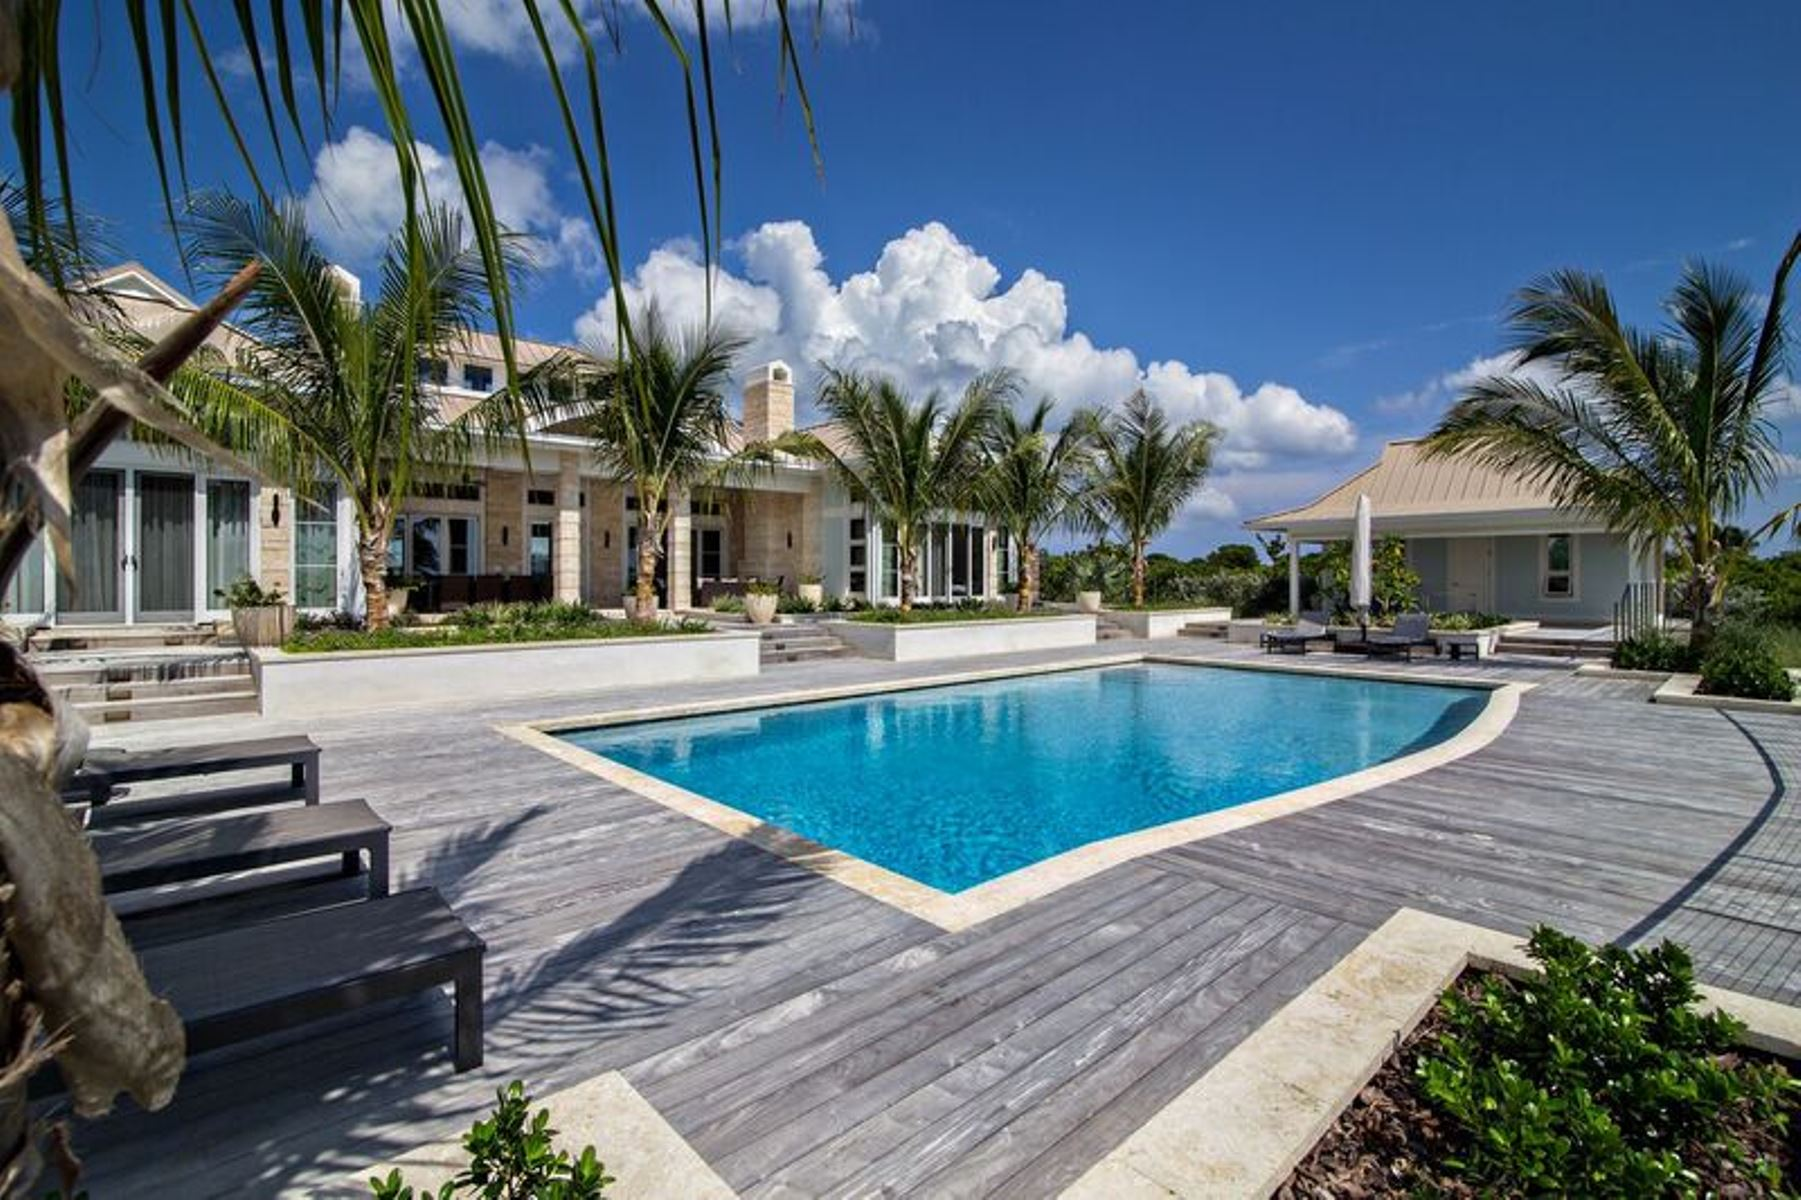 Einfamilienhaus für Verkauf beim Enchanting Home Located At The Abaco Club on Winding Bay (MLS 27799) Abaco, Bahamas